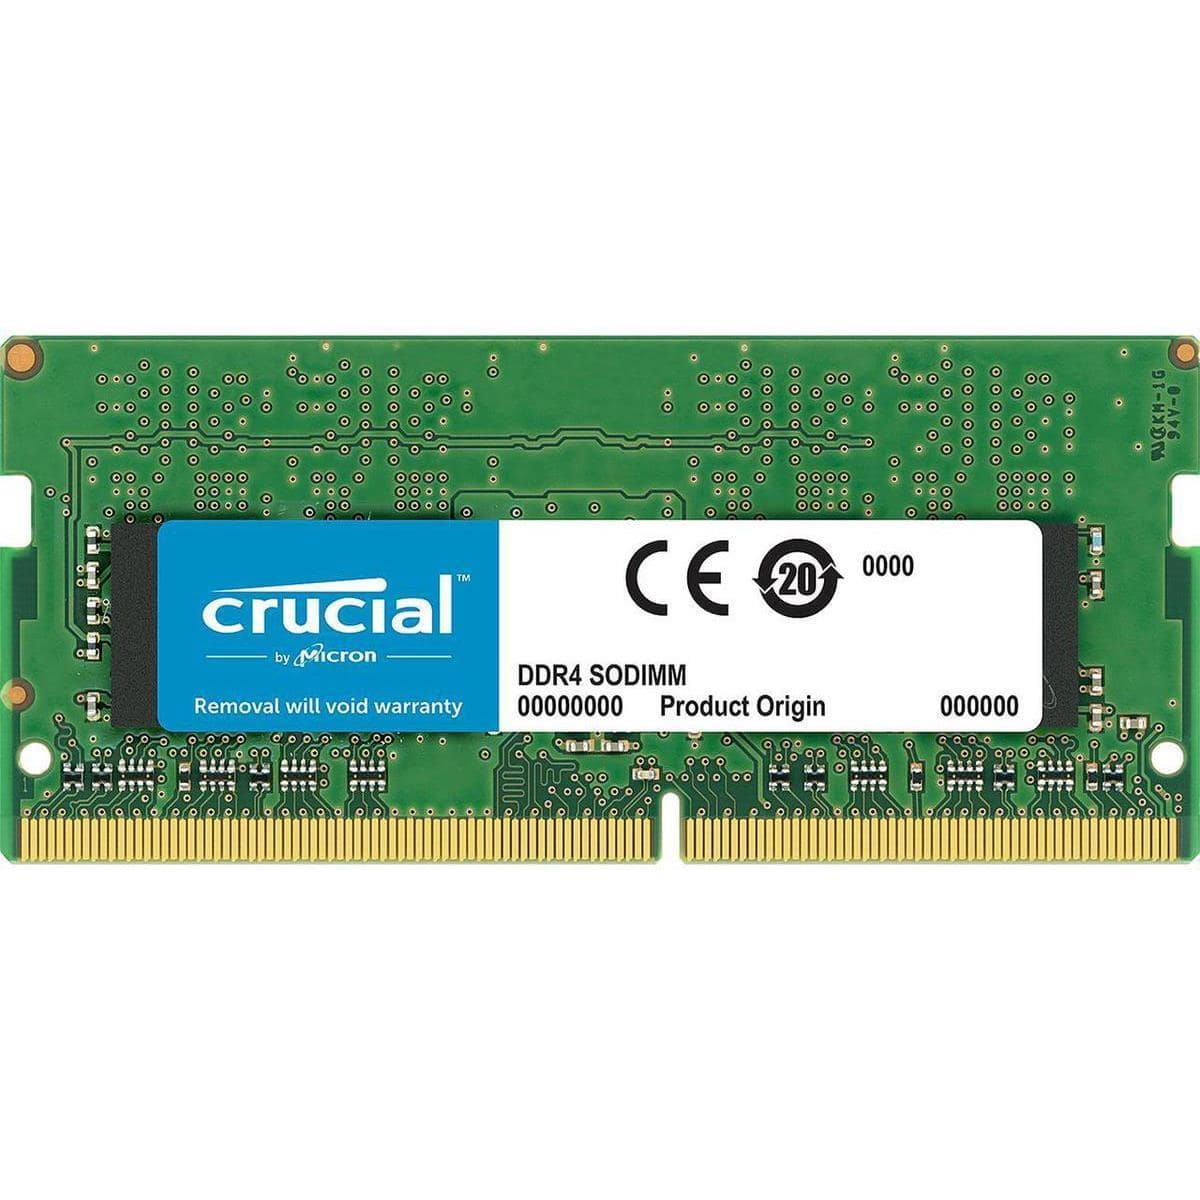 Crucial/Ballistix Memory 20% off with code: Crucial 8GB DDR4 2666 260-PIN SODIMM @ $25.6, and more